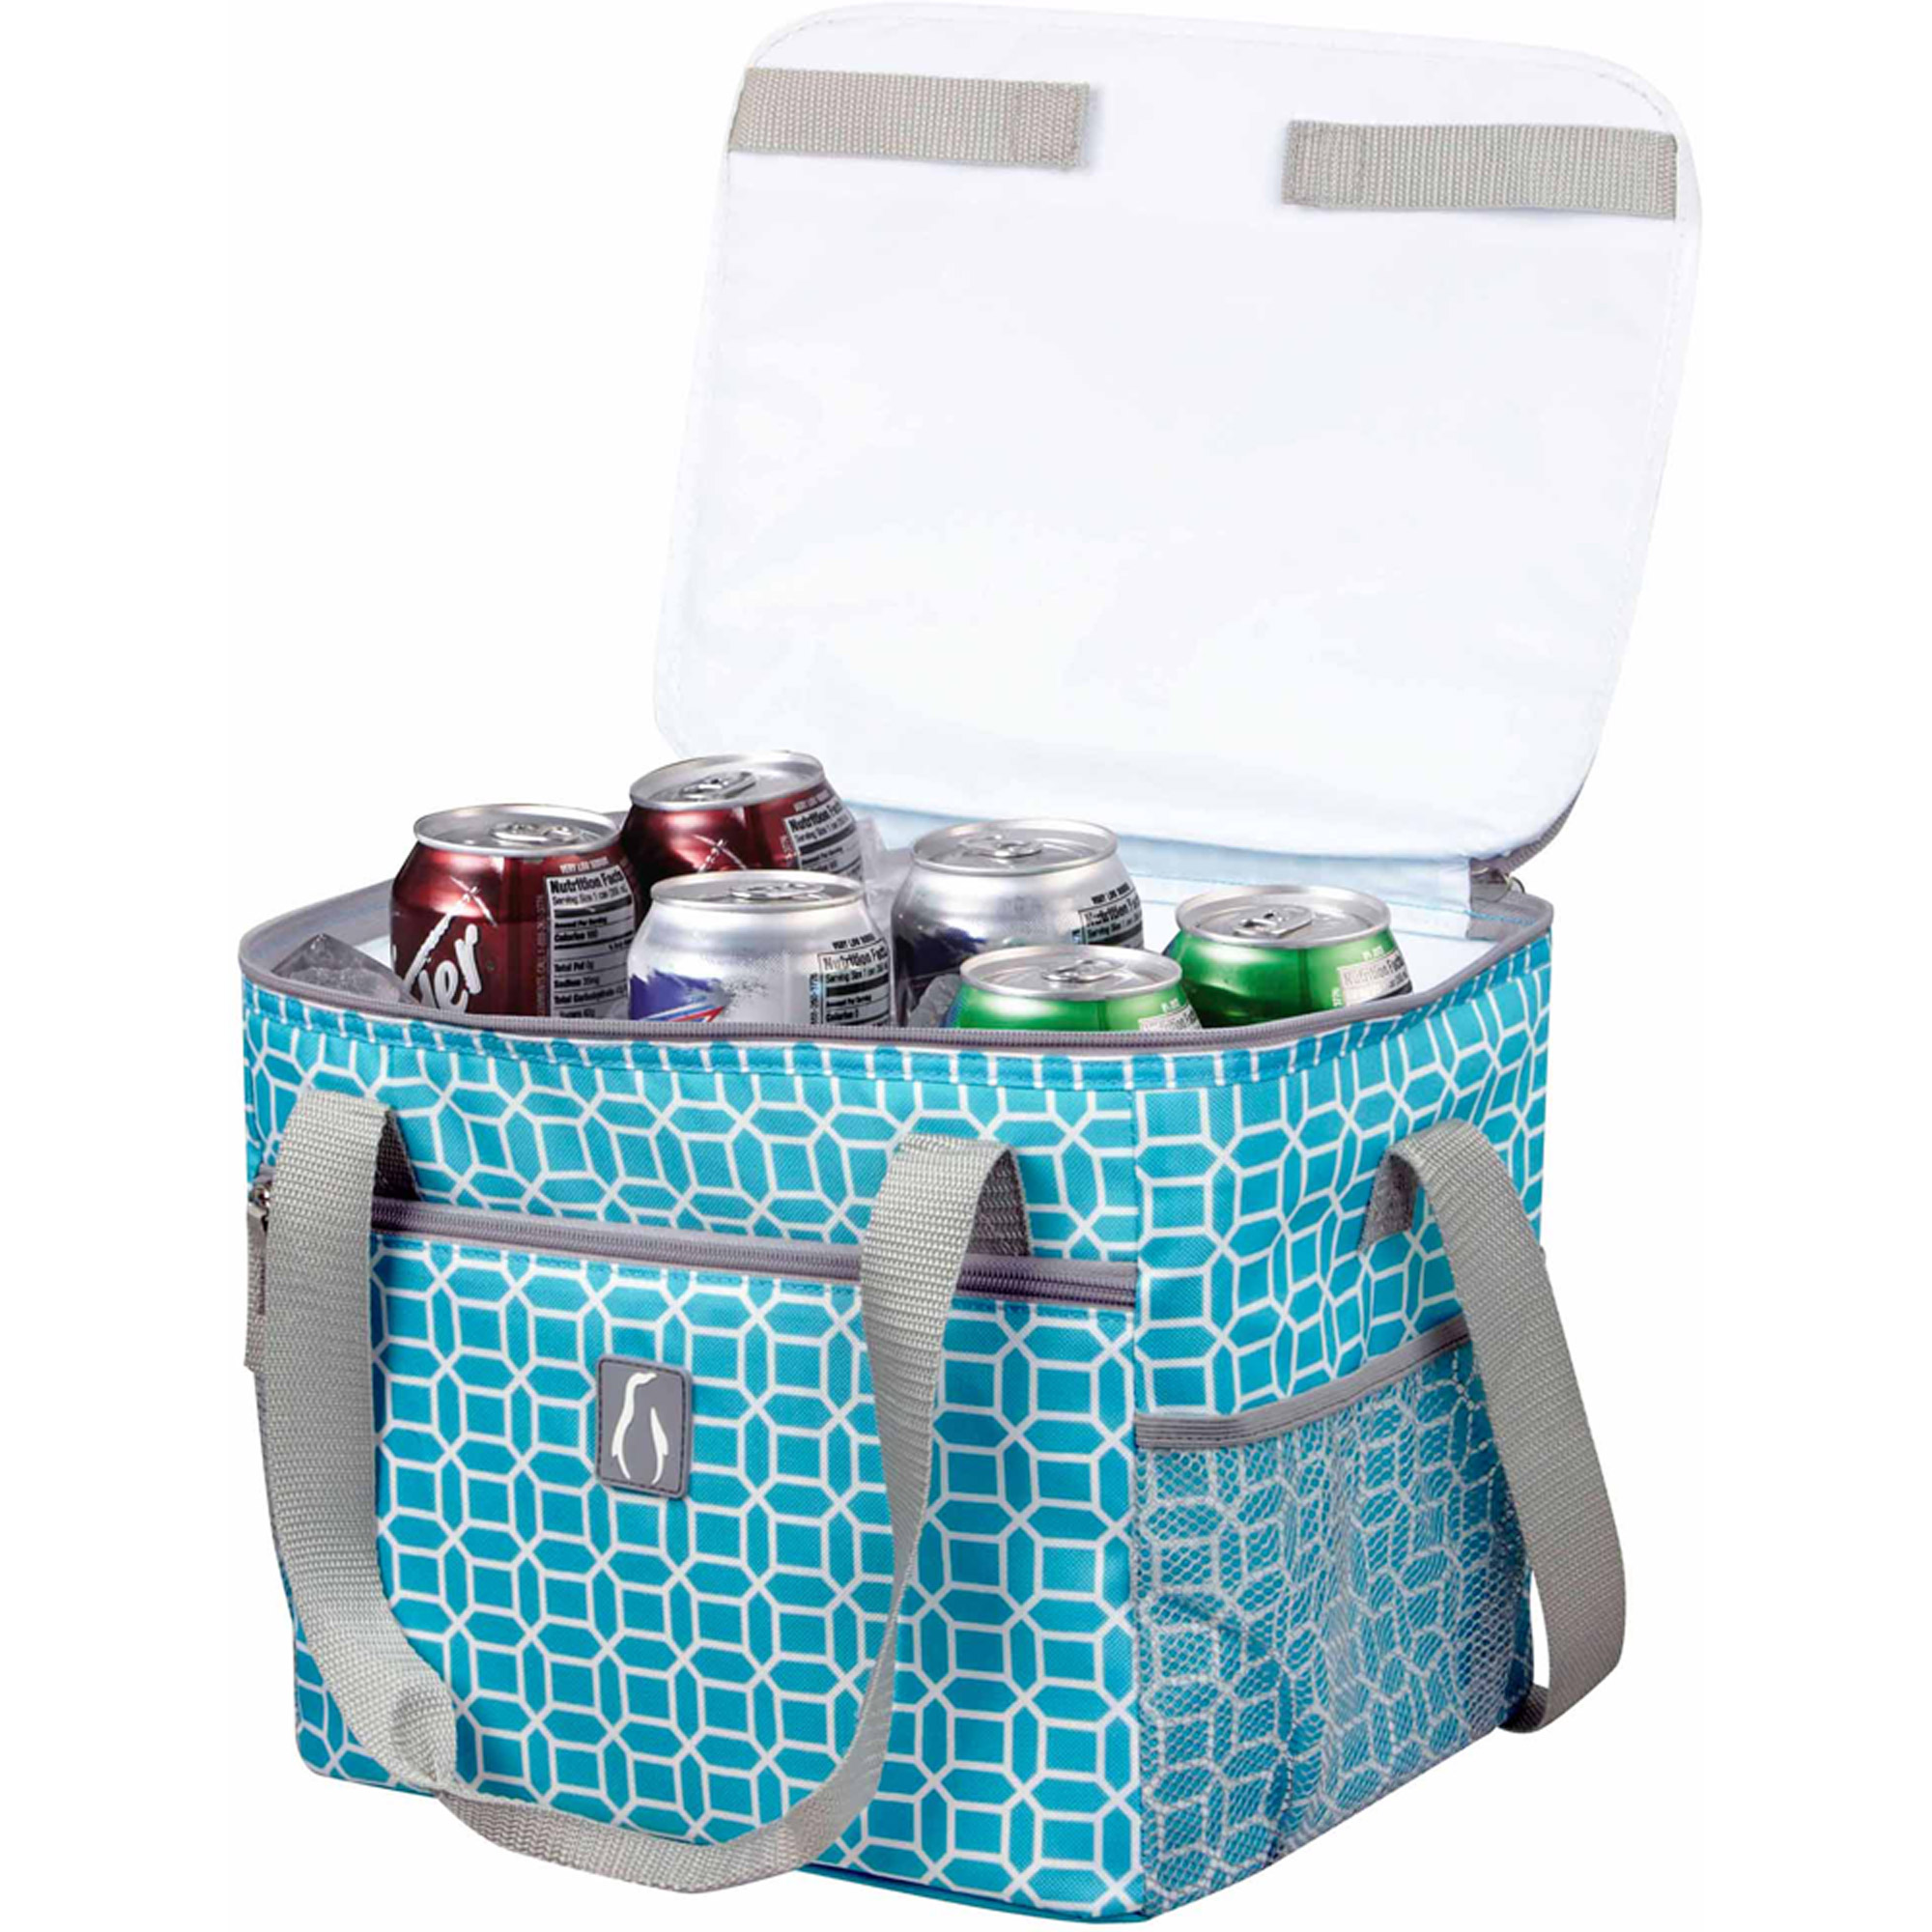 Penguin 24-Can Collapsible Fashion Cooler